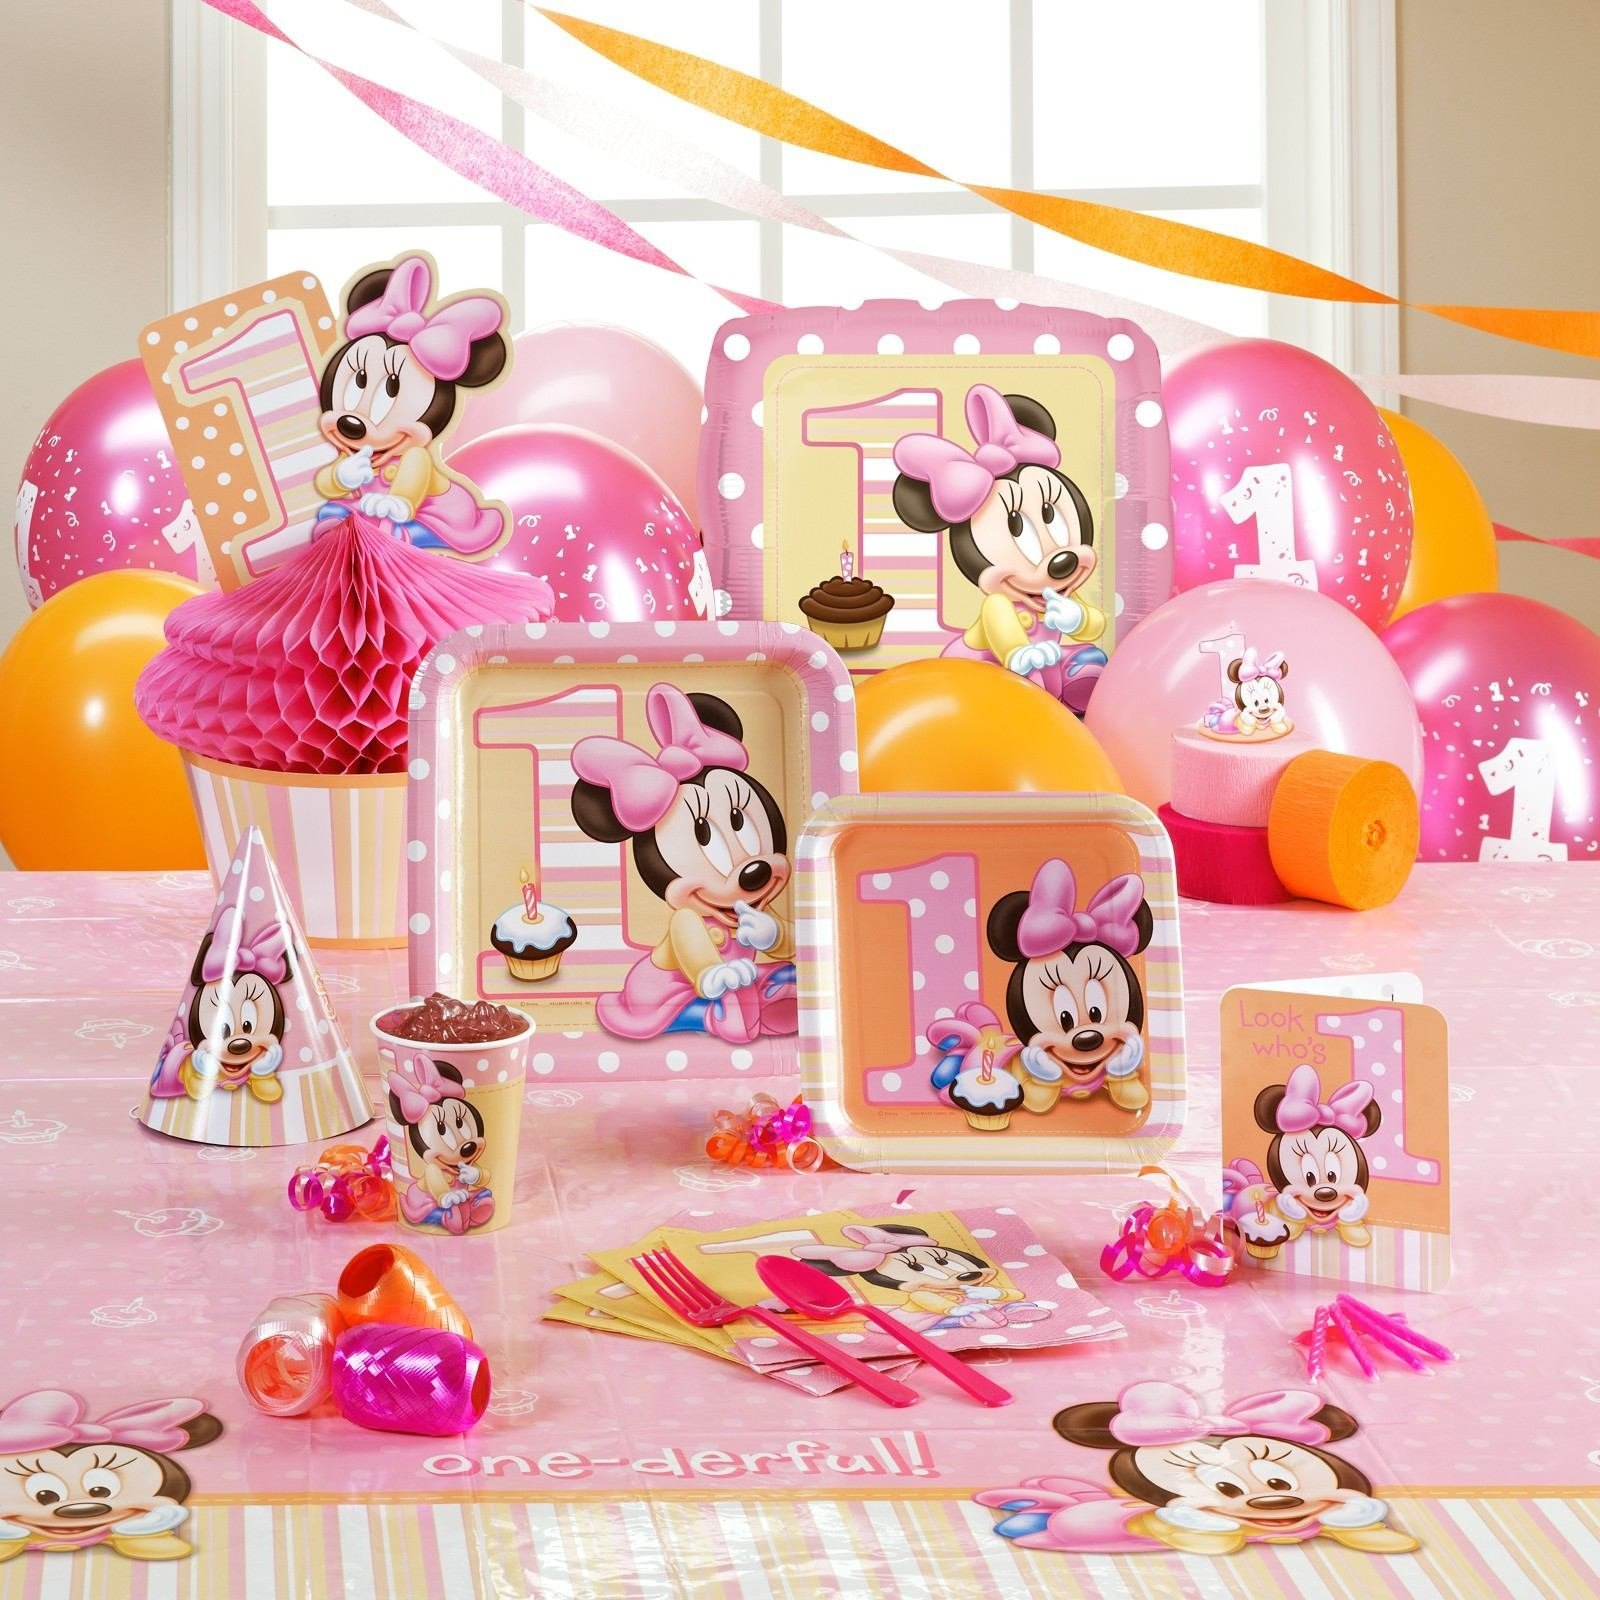 Birthday Party Decoration Ideas For 1 Year Old Boy Flisol Home